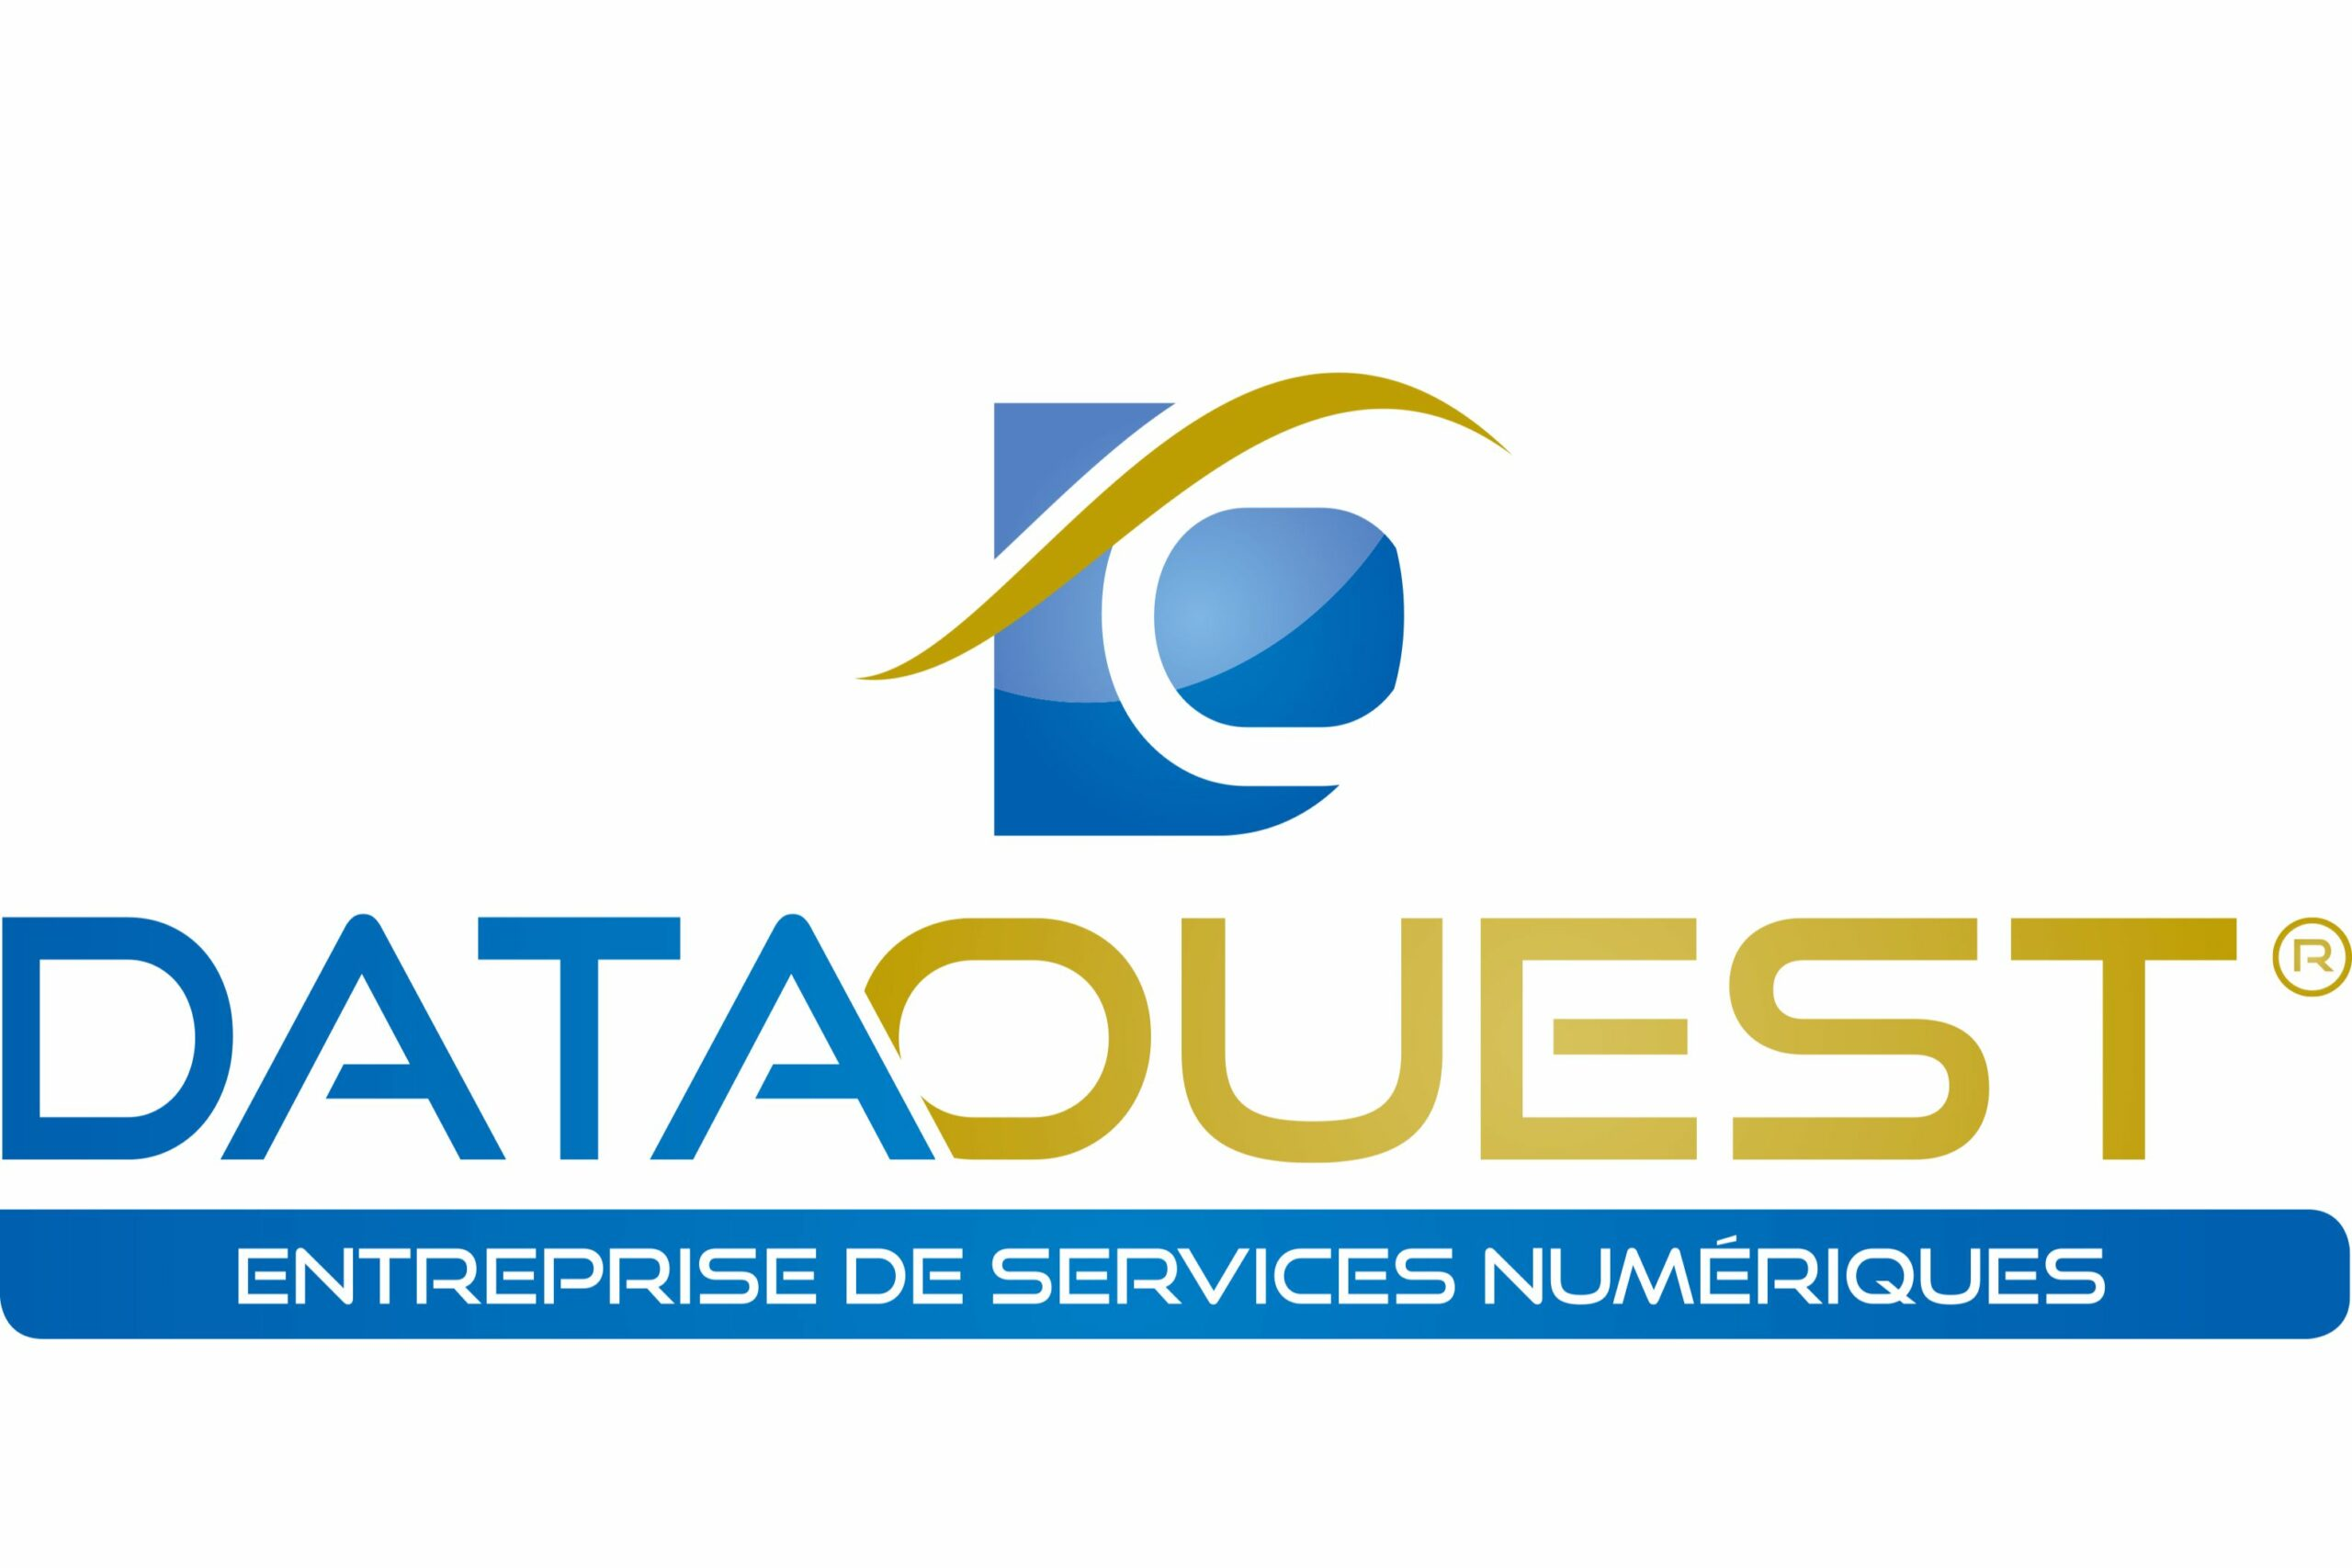 DATAOUEST